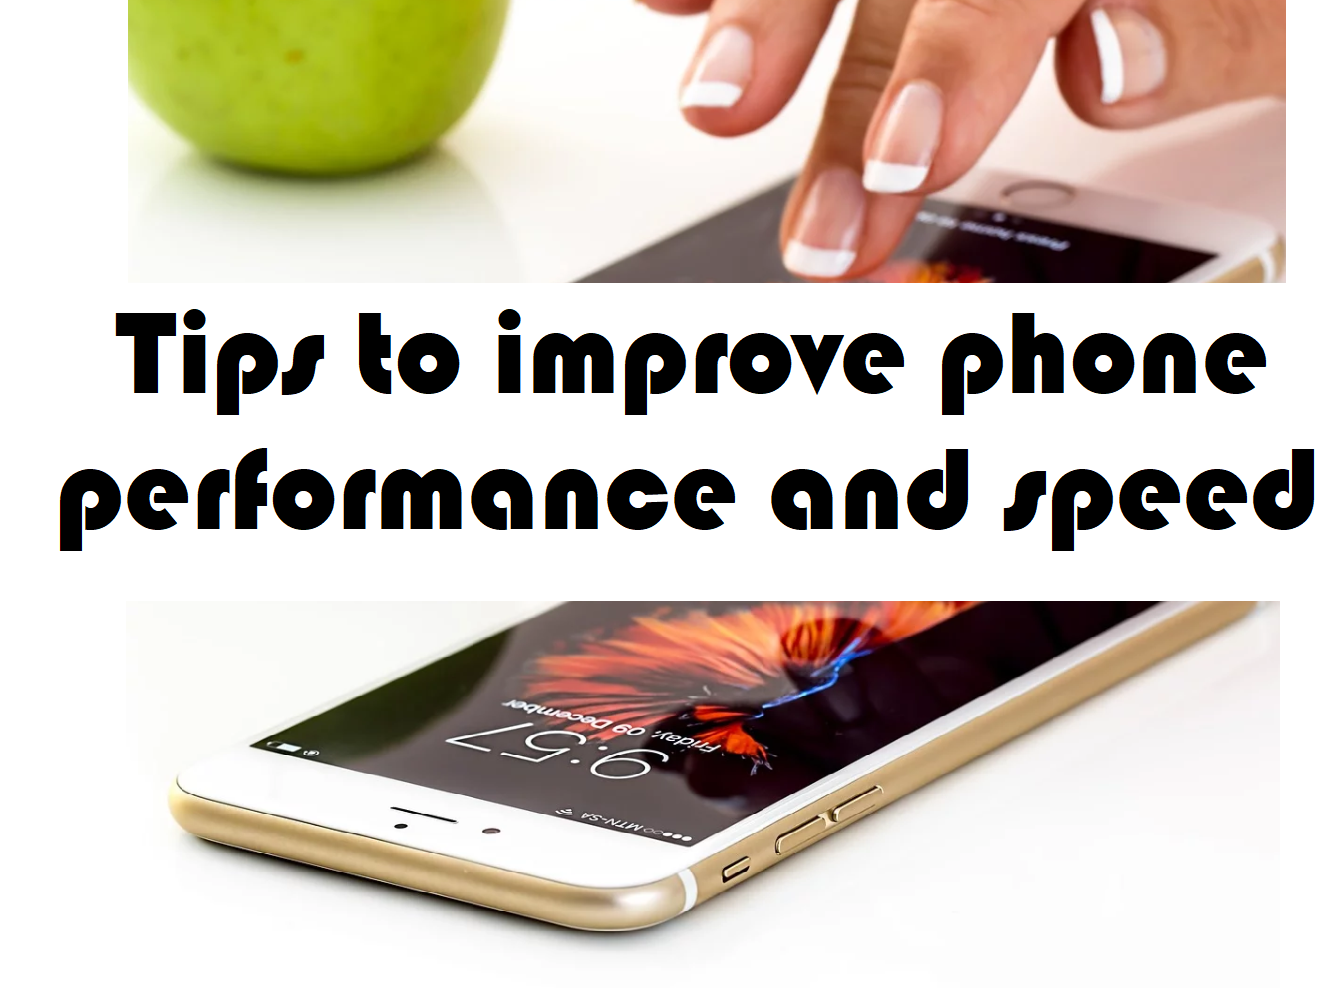 Tips to improve phone performance